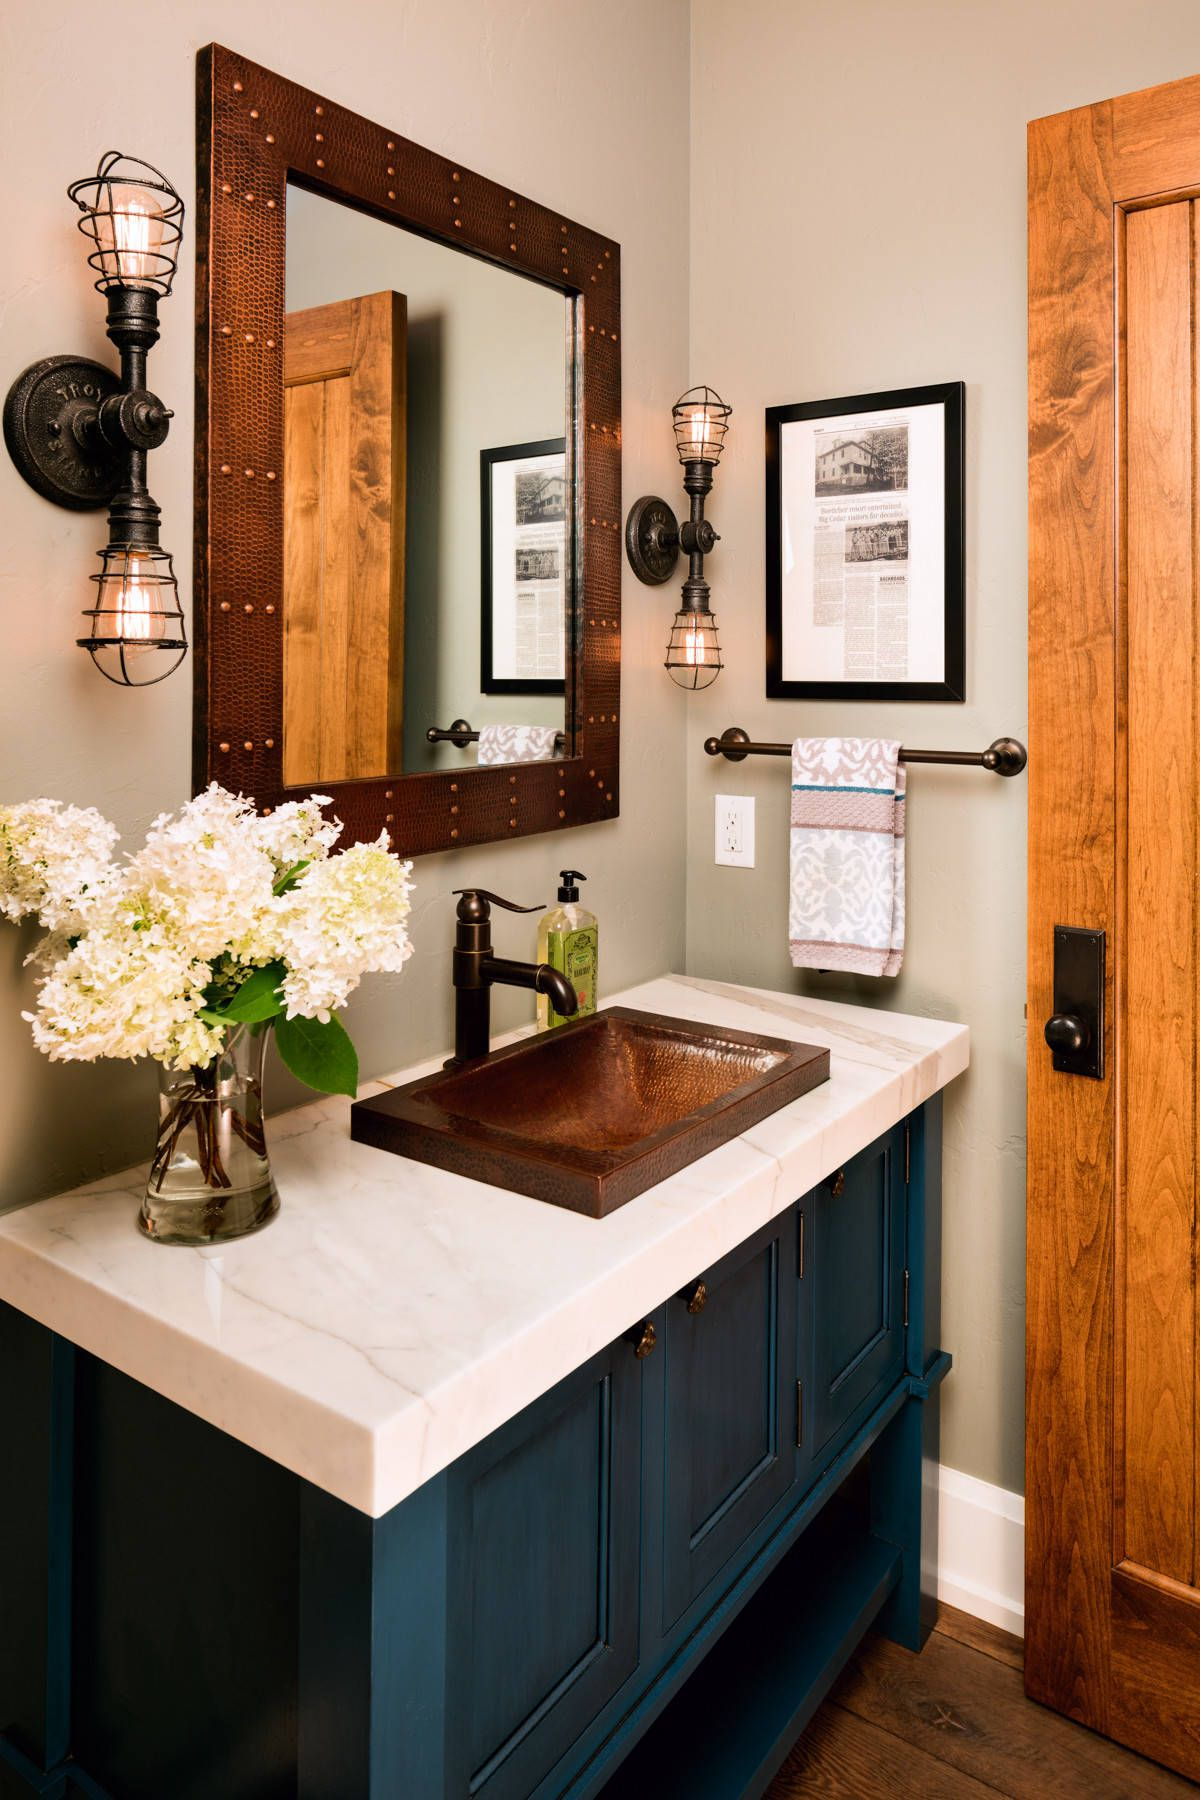 Posh vanity in blue along with sconce lighting for the farmhouse style powder room